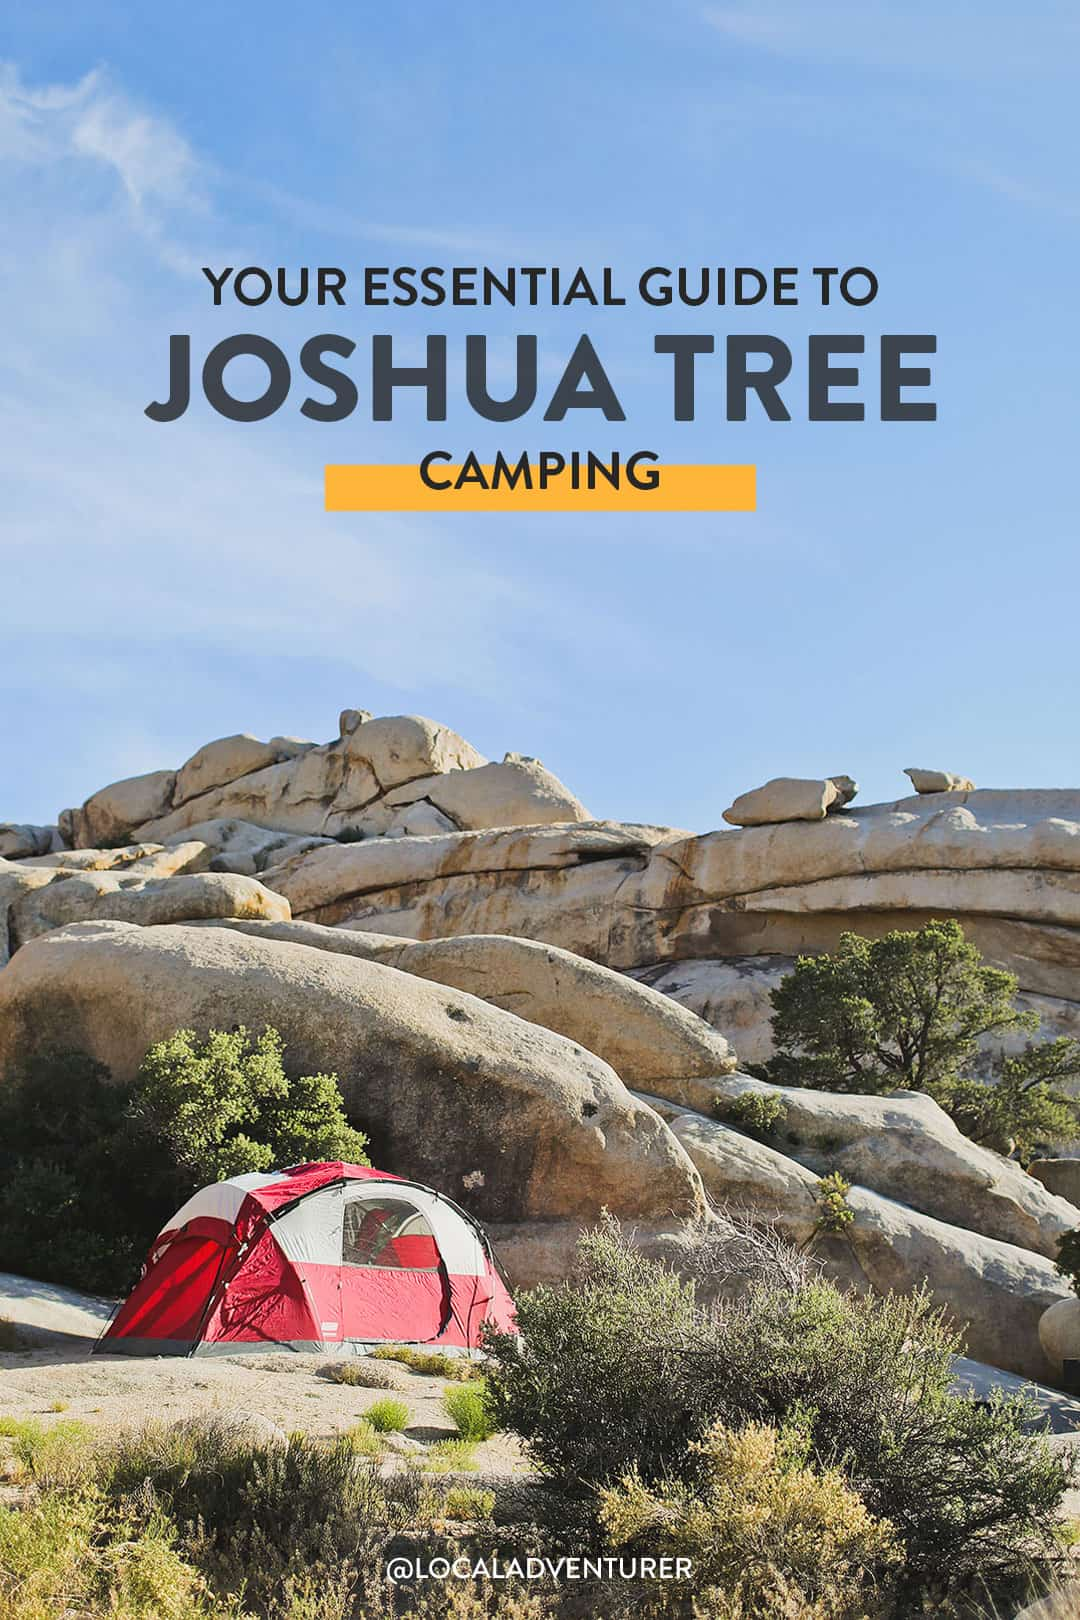 Joshua Tree Camping - What You Need to Know Before Your Trip